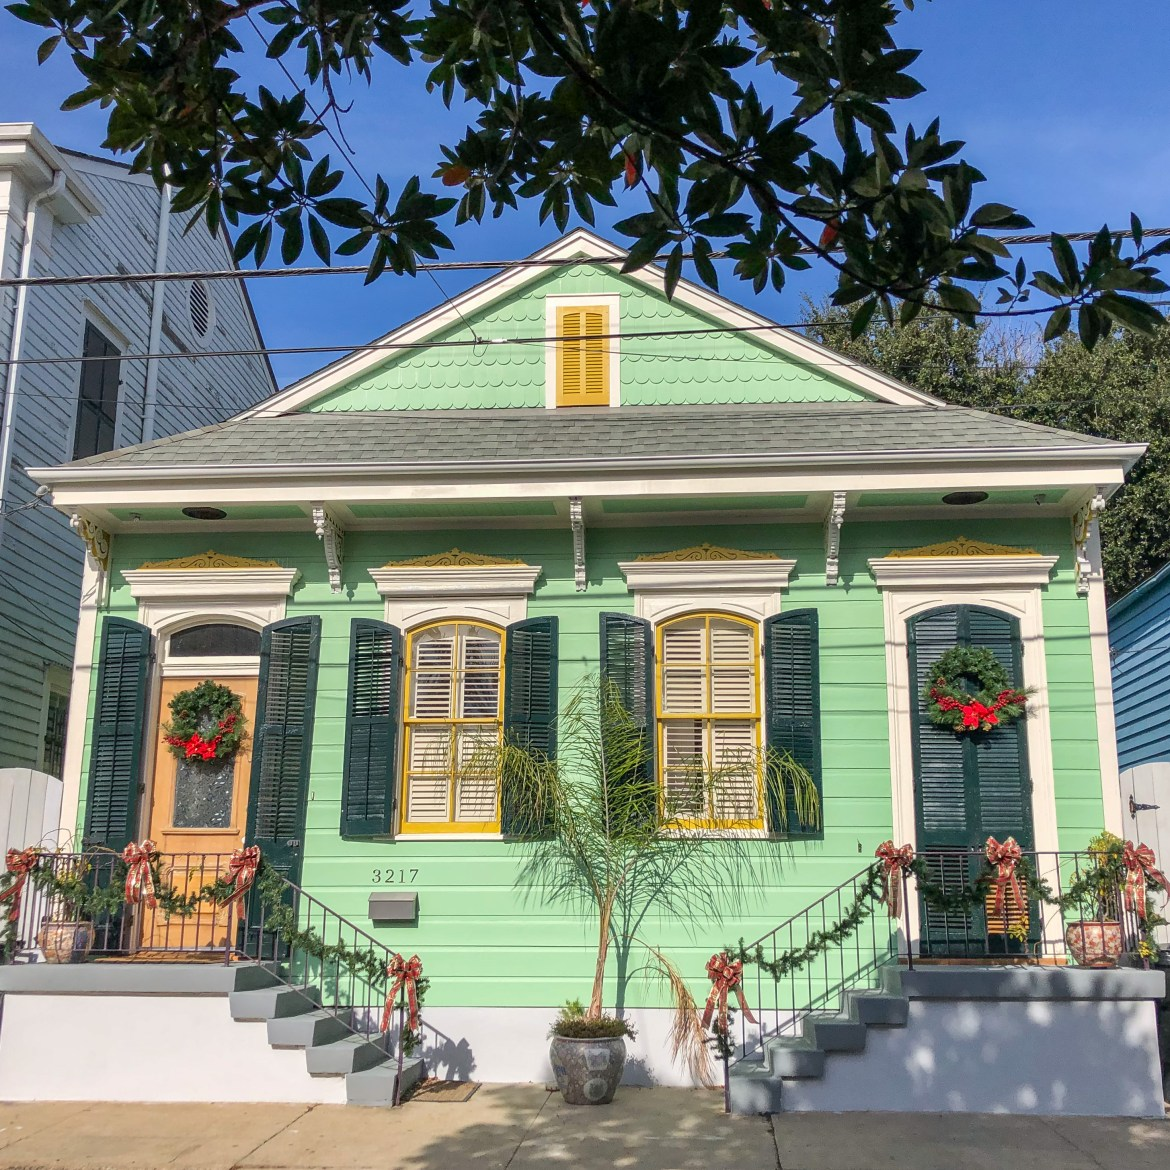 #nola #bywater